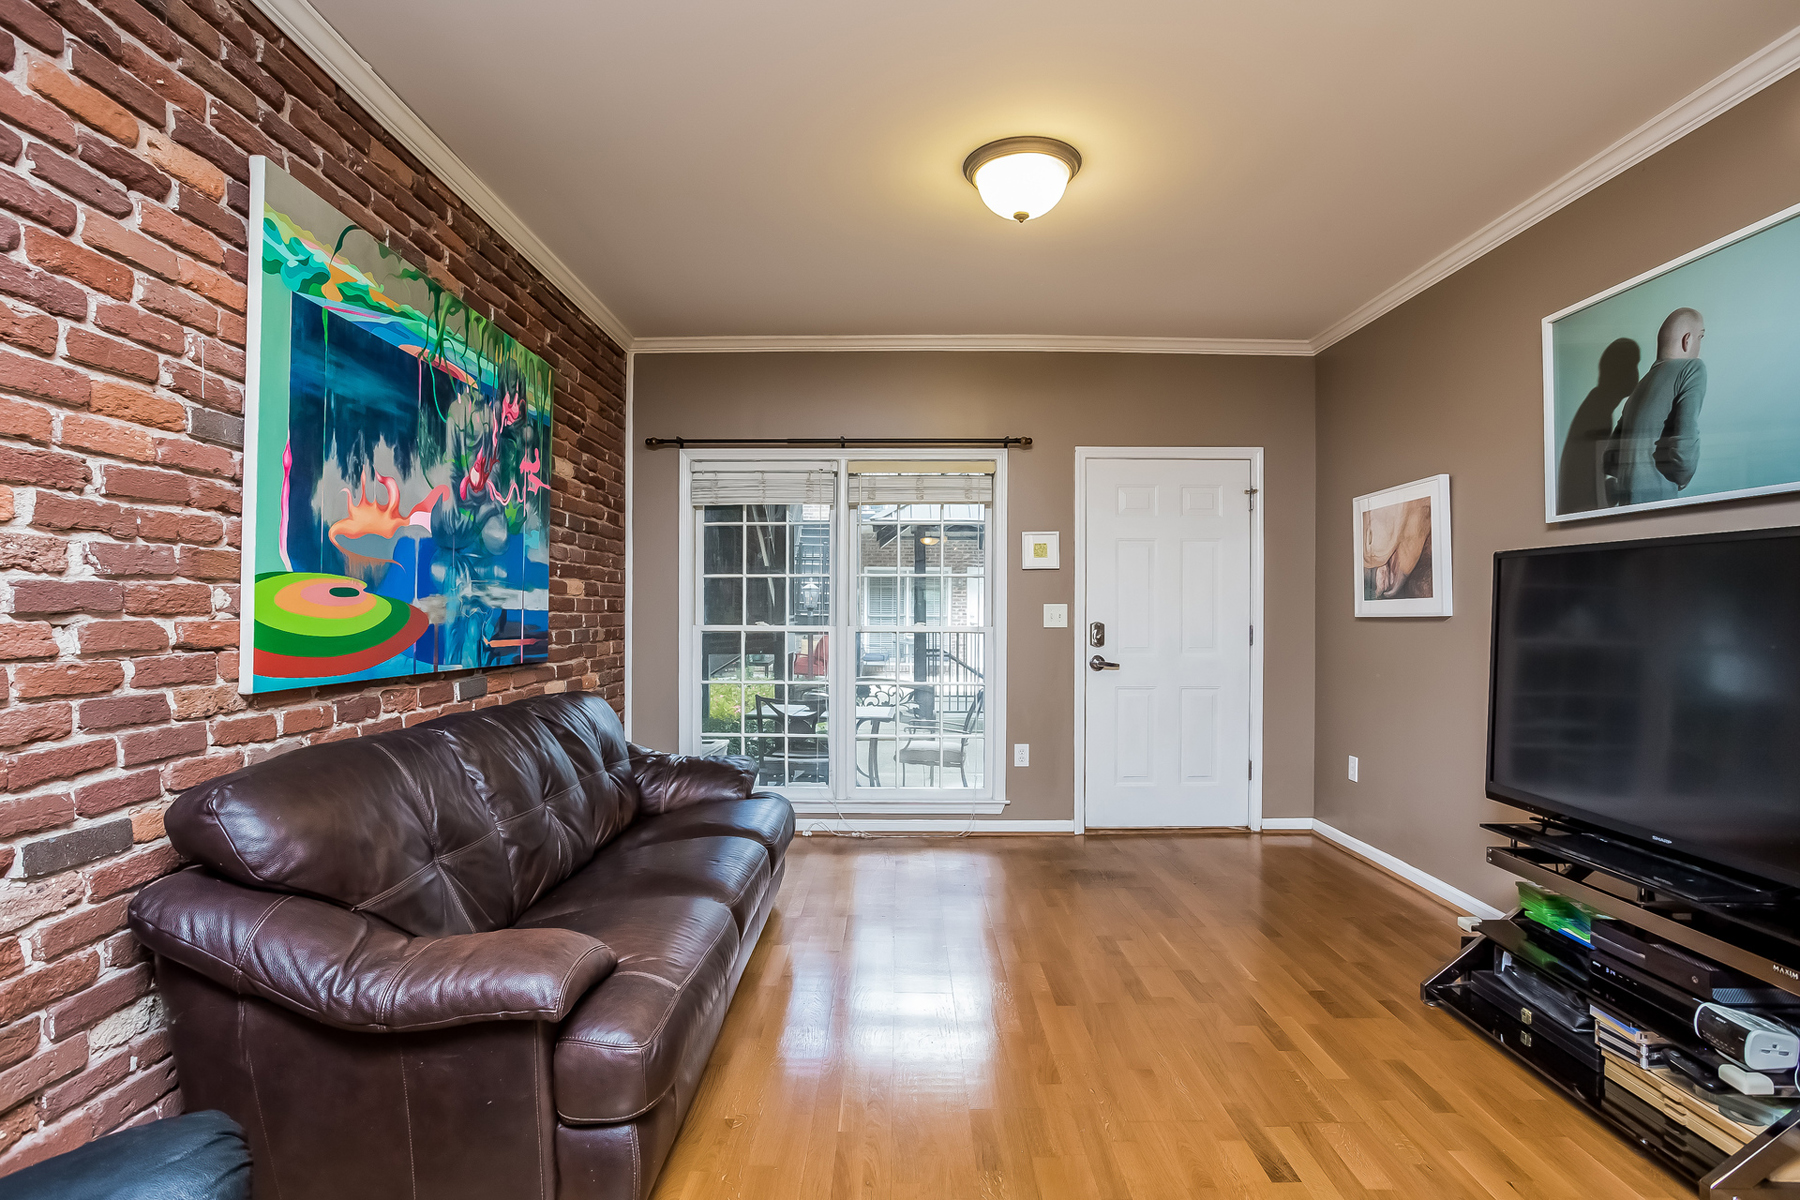 Additional photo for property listing at Spacious Two Bedroom Condo In BuckheadBrookhaven 3675 Peachtree Road NE Unit 39 Atlanta, Джорджия 30319 Соединенные Штаты